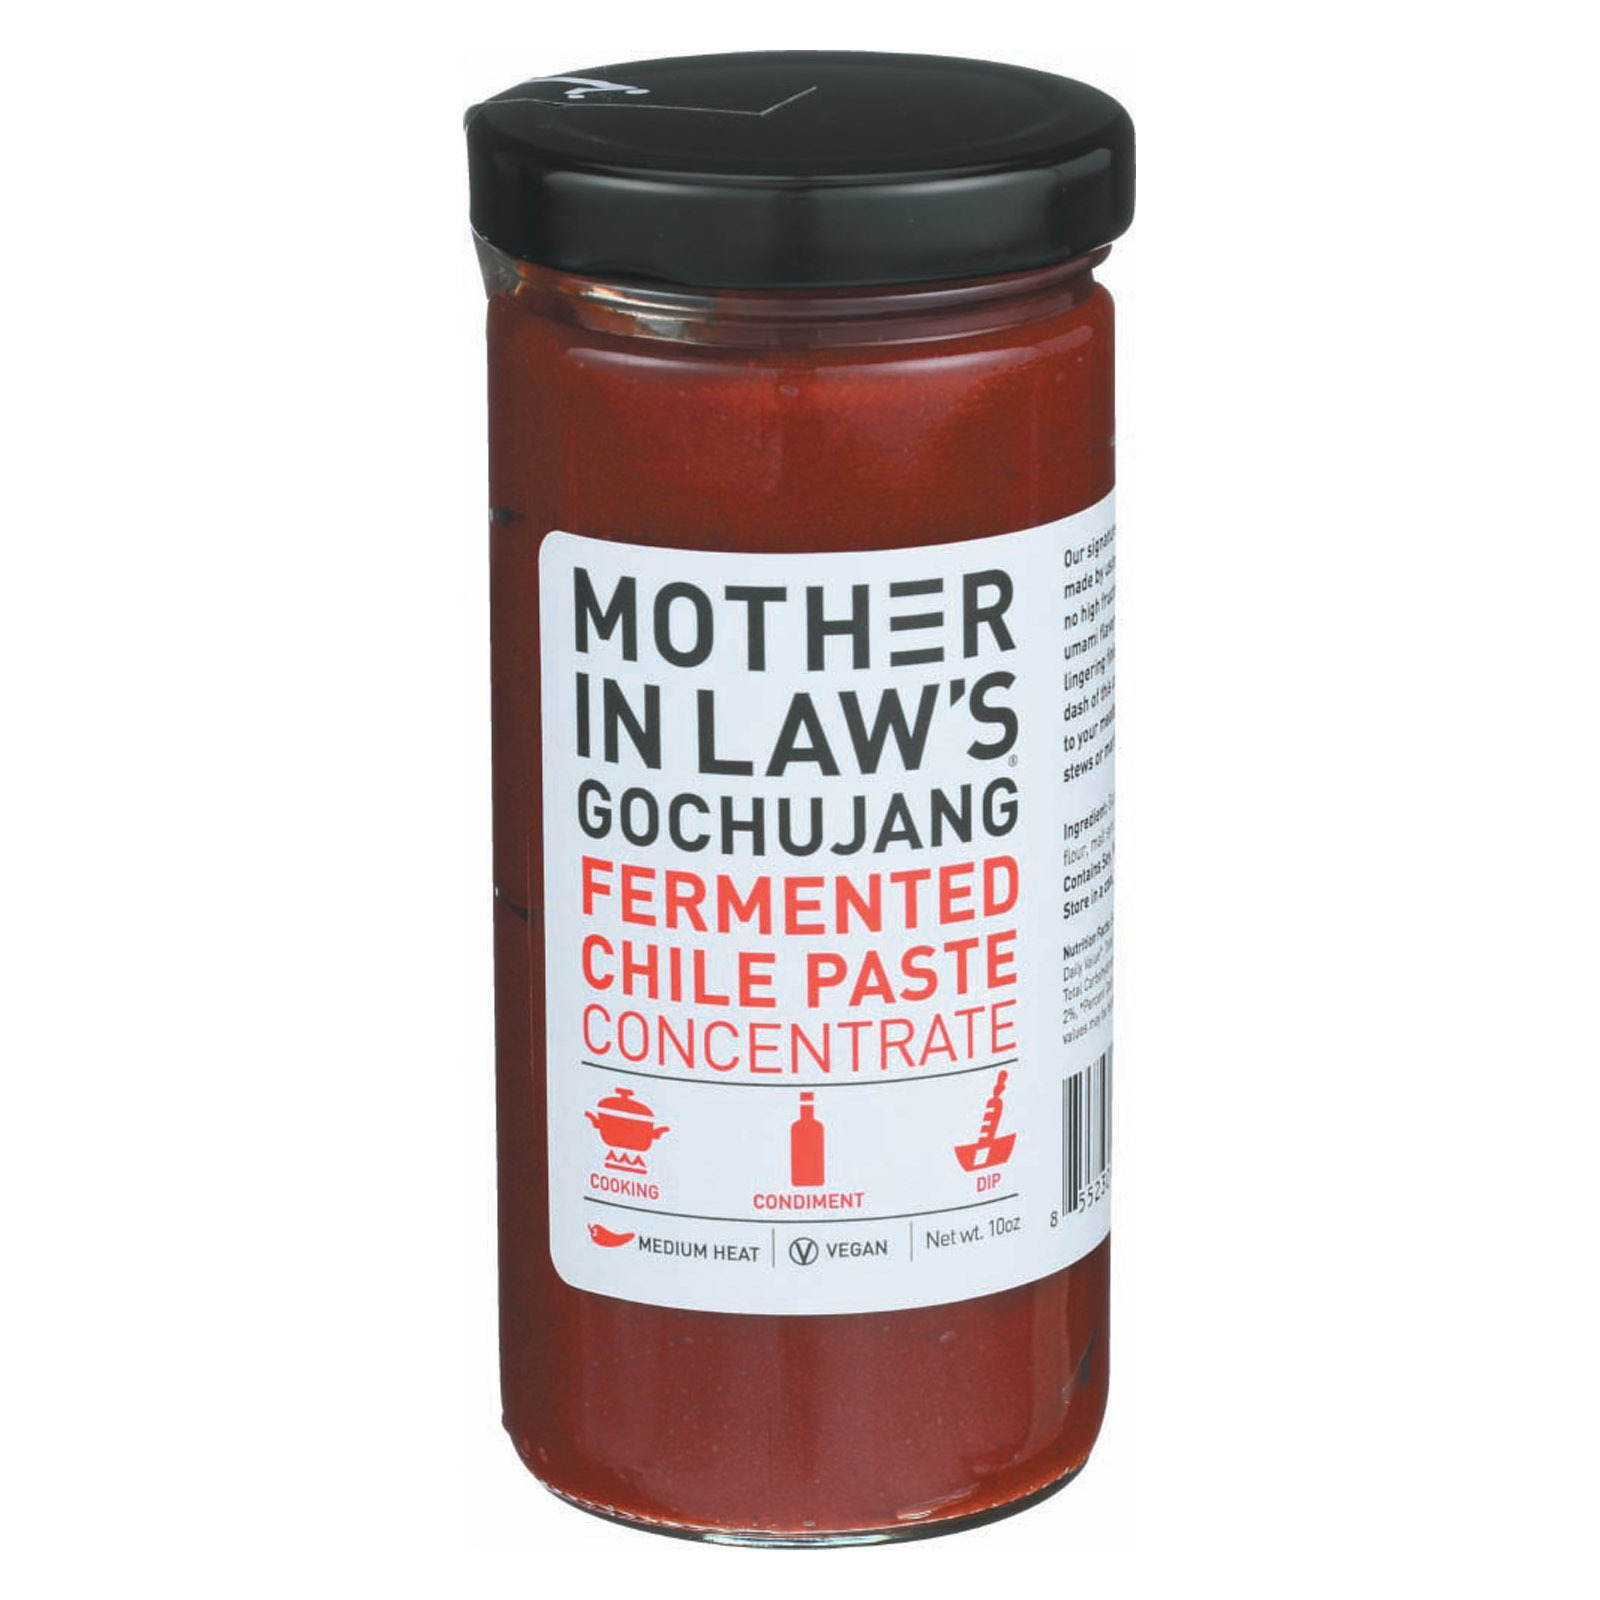 Mother-In-Law's Kimchi Fermented Chile Paste - Case of 6 - 10 oz.